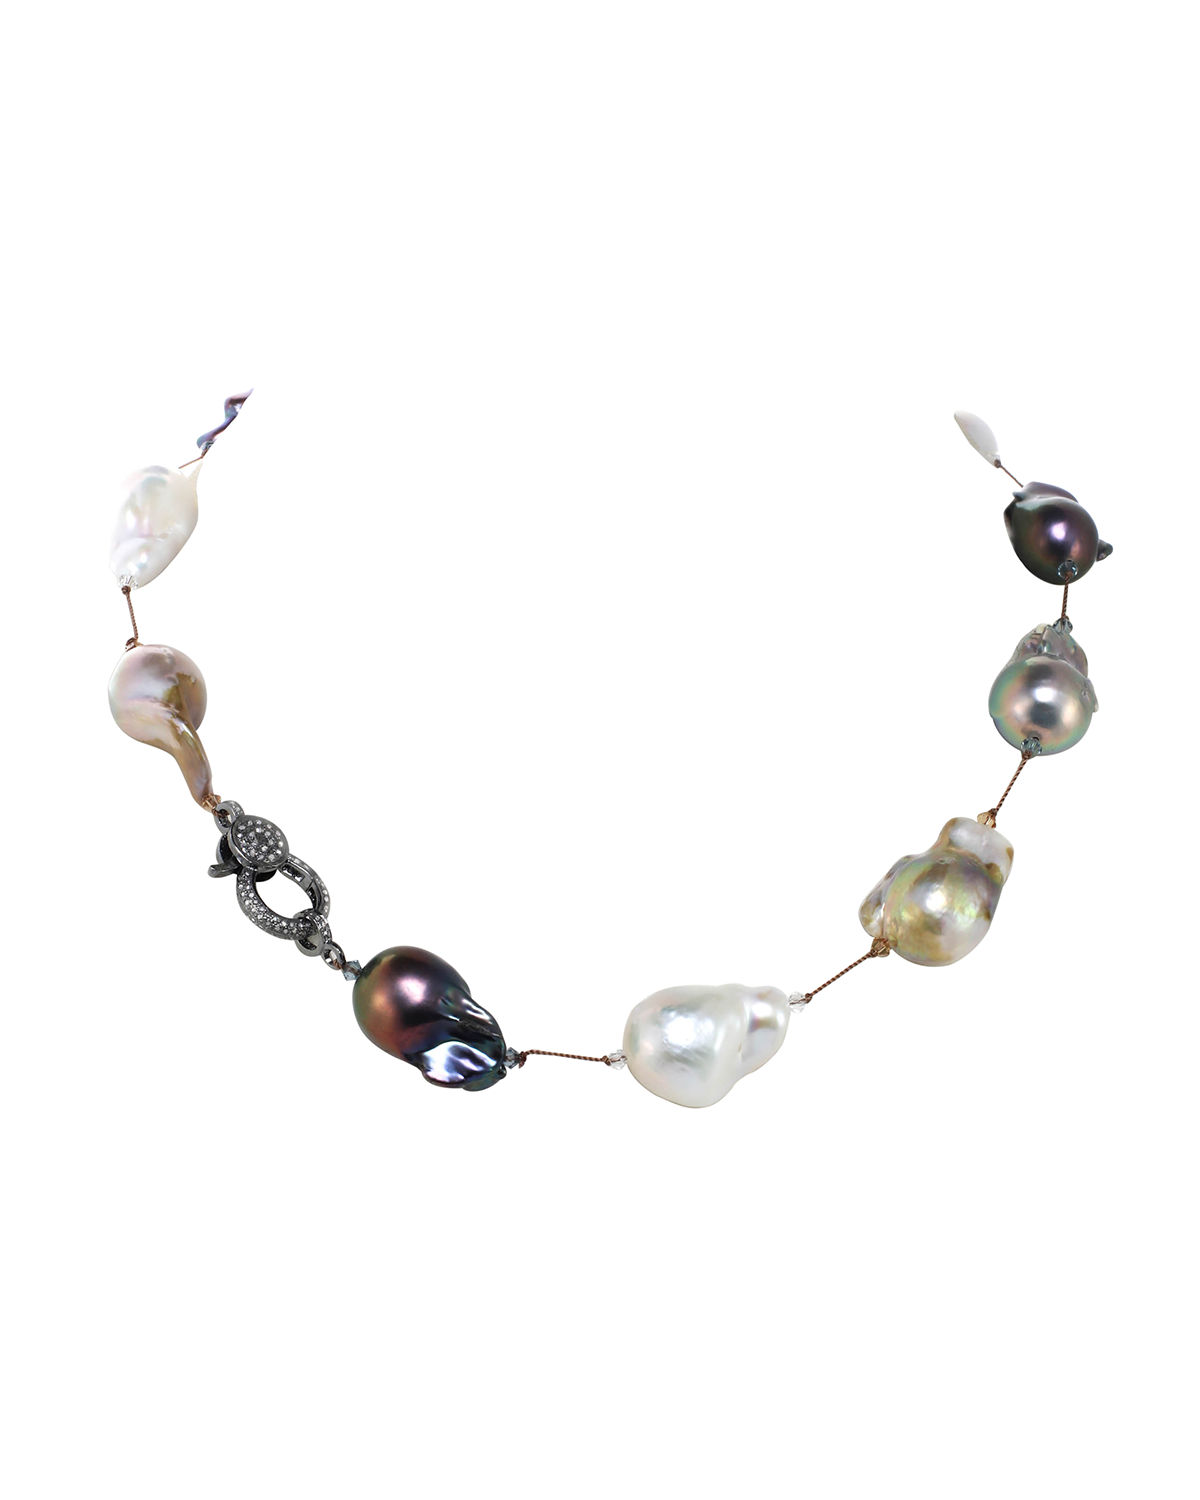 Large White Baroque Pearl Necklace with Swarovski Crystal and a Diamond Clasp